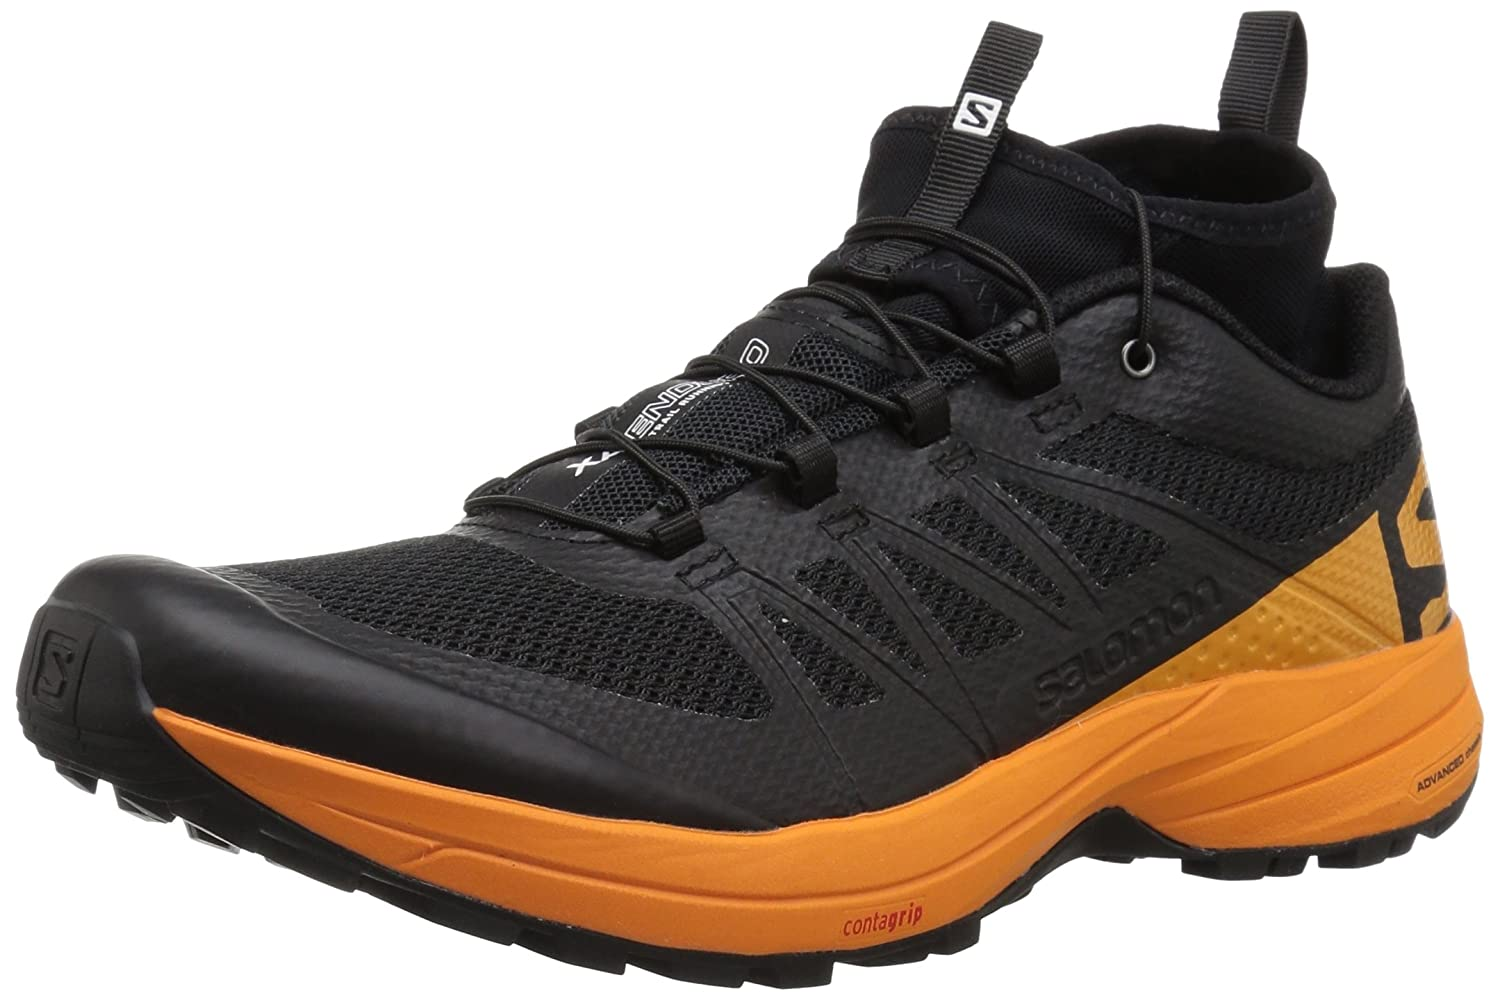 Salomon XA Enduro, Zapatillas de Trail Running para Hombre 46 2/3 EU|Negro (Black/Bright Marigold/Black 000)